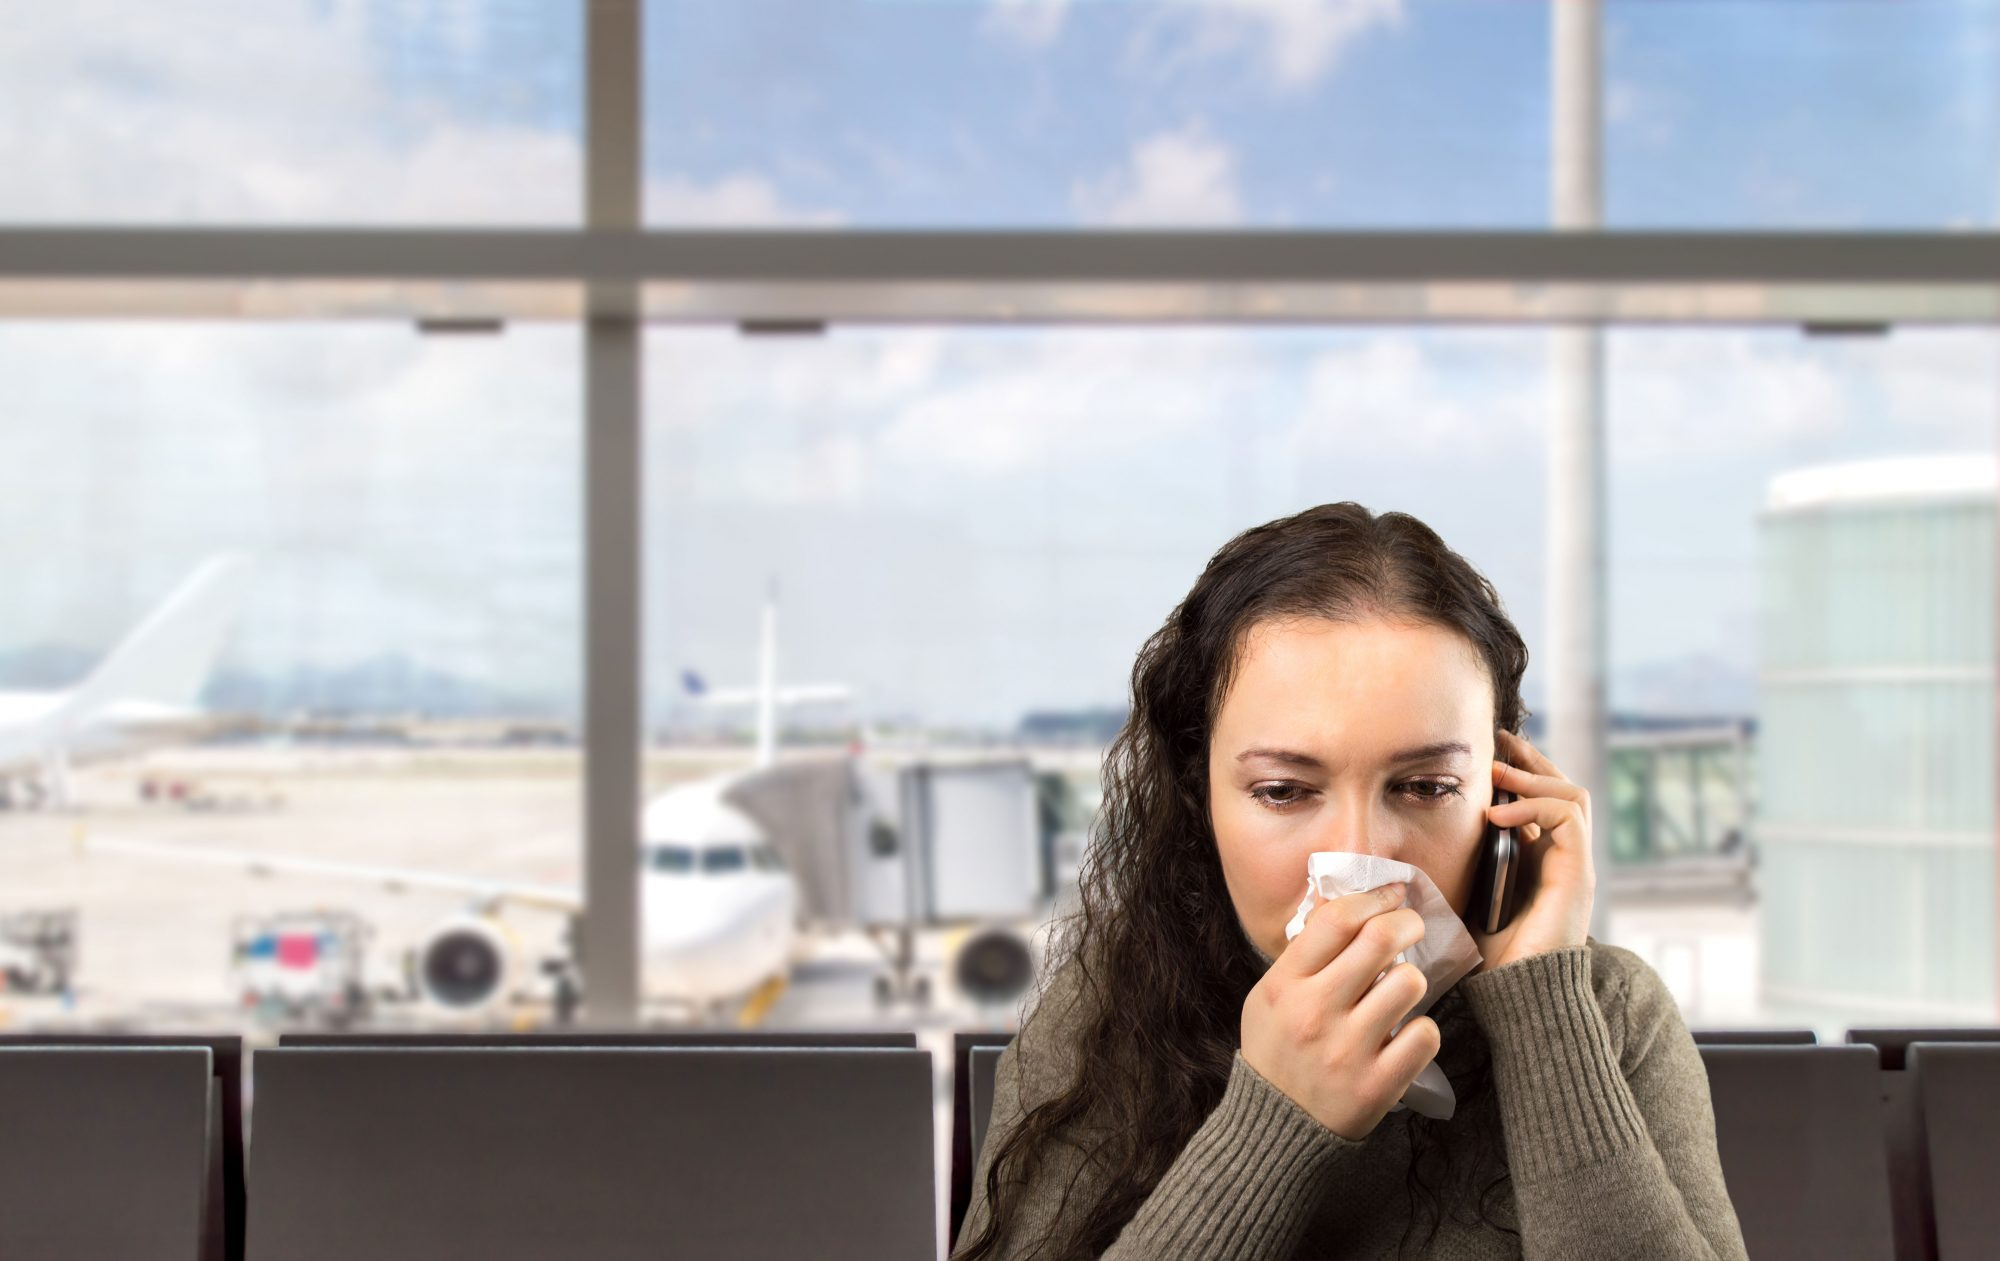 Sick Woman at Airport